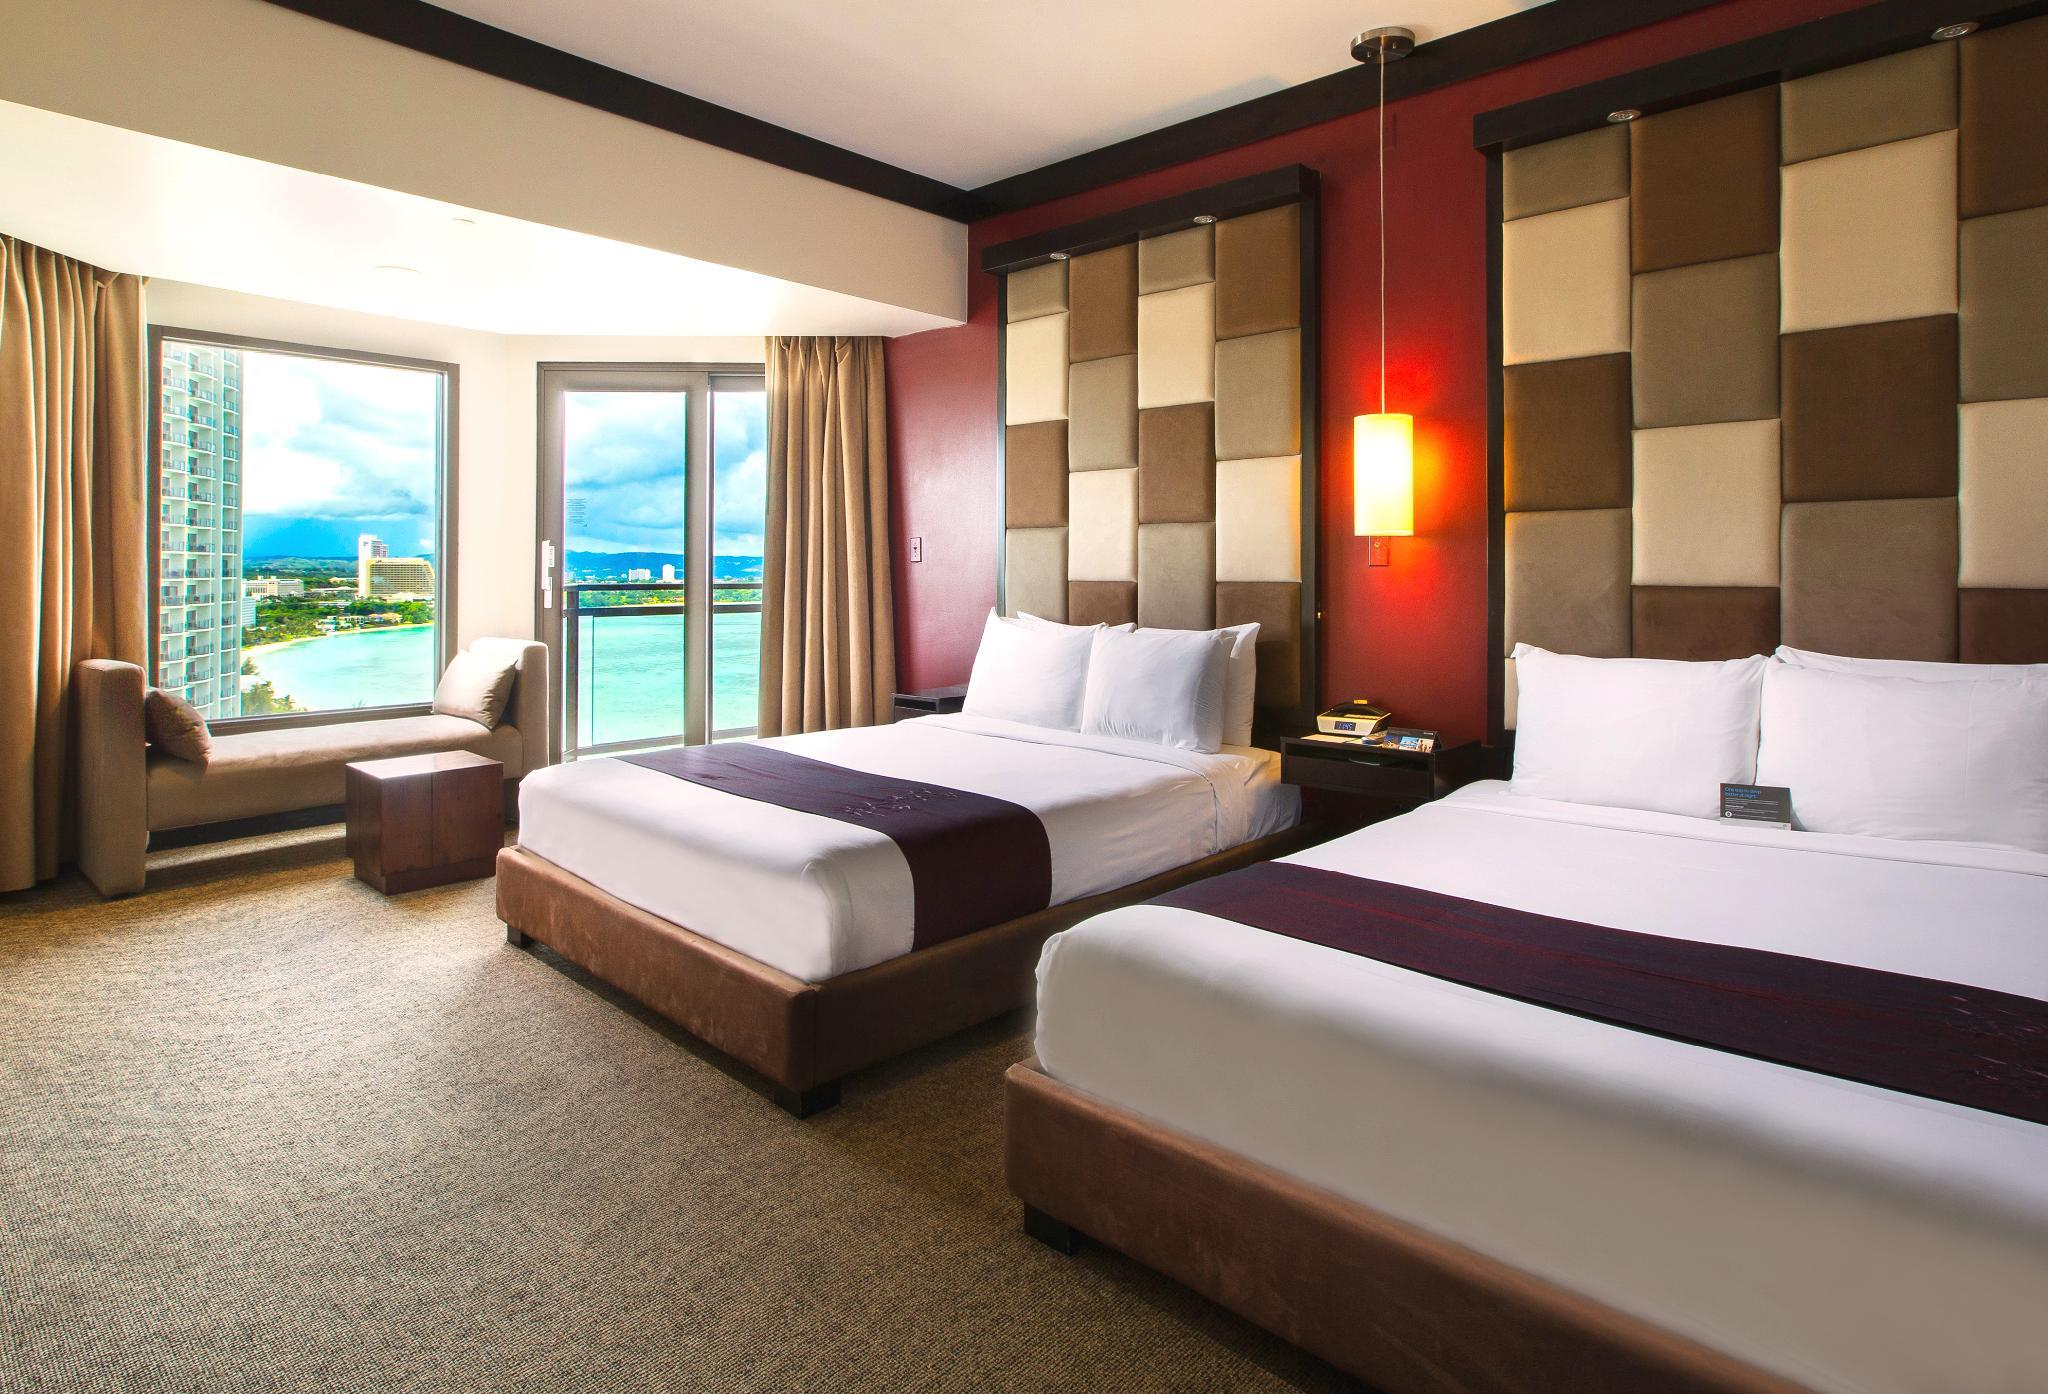 Club Ocean View Room with 2 Queen Beds